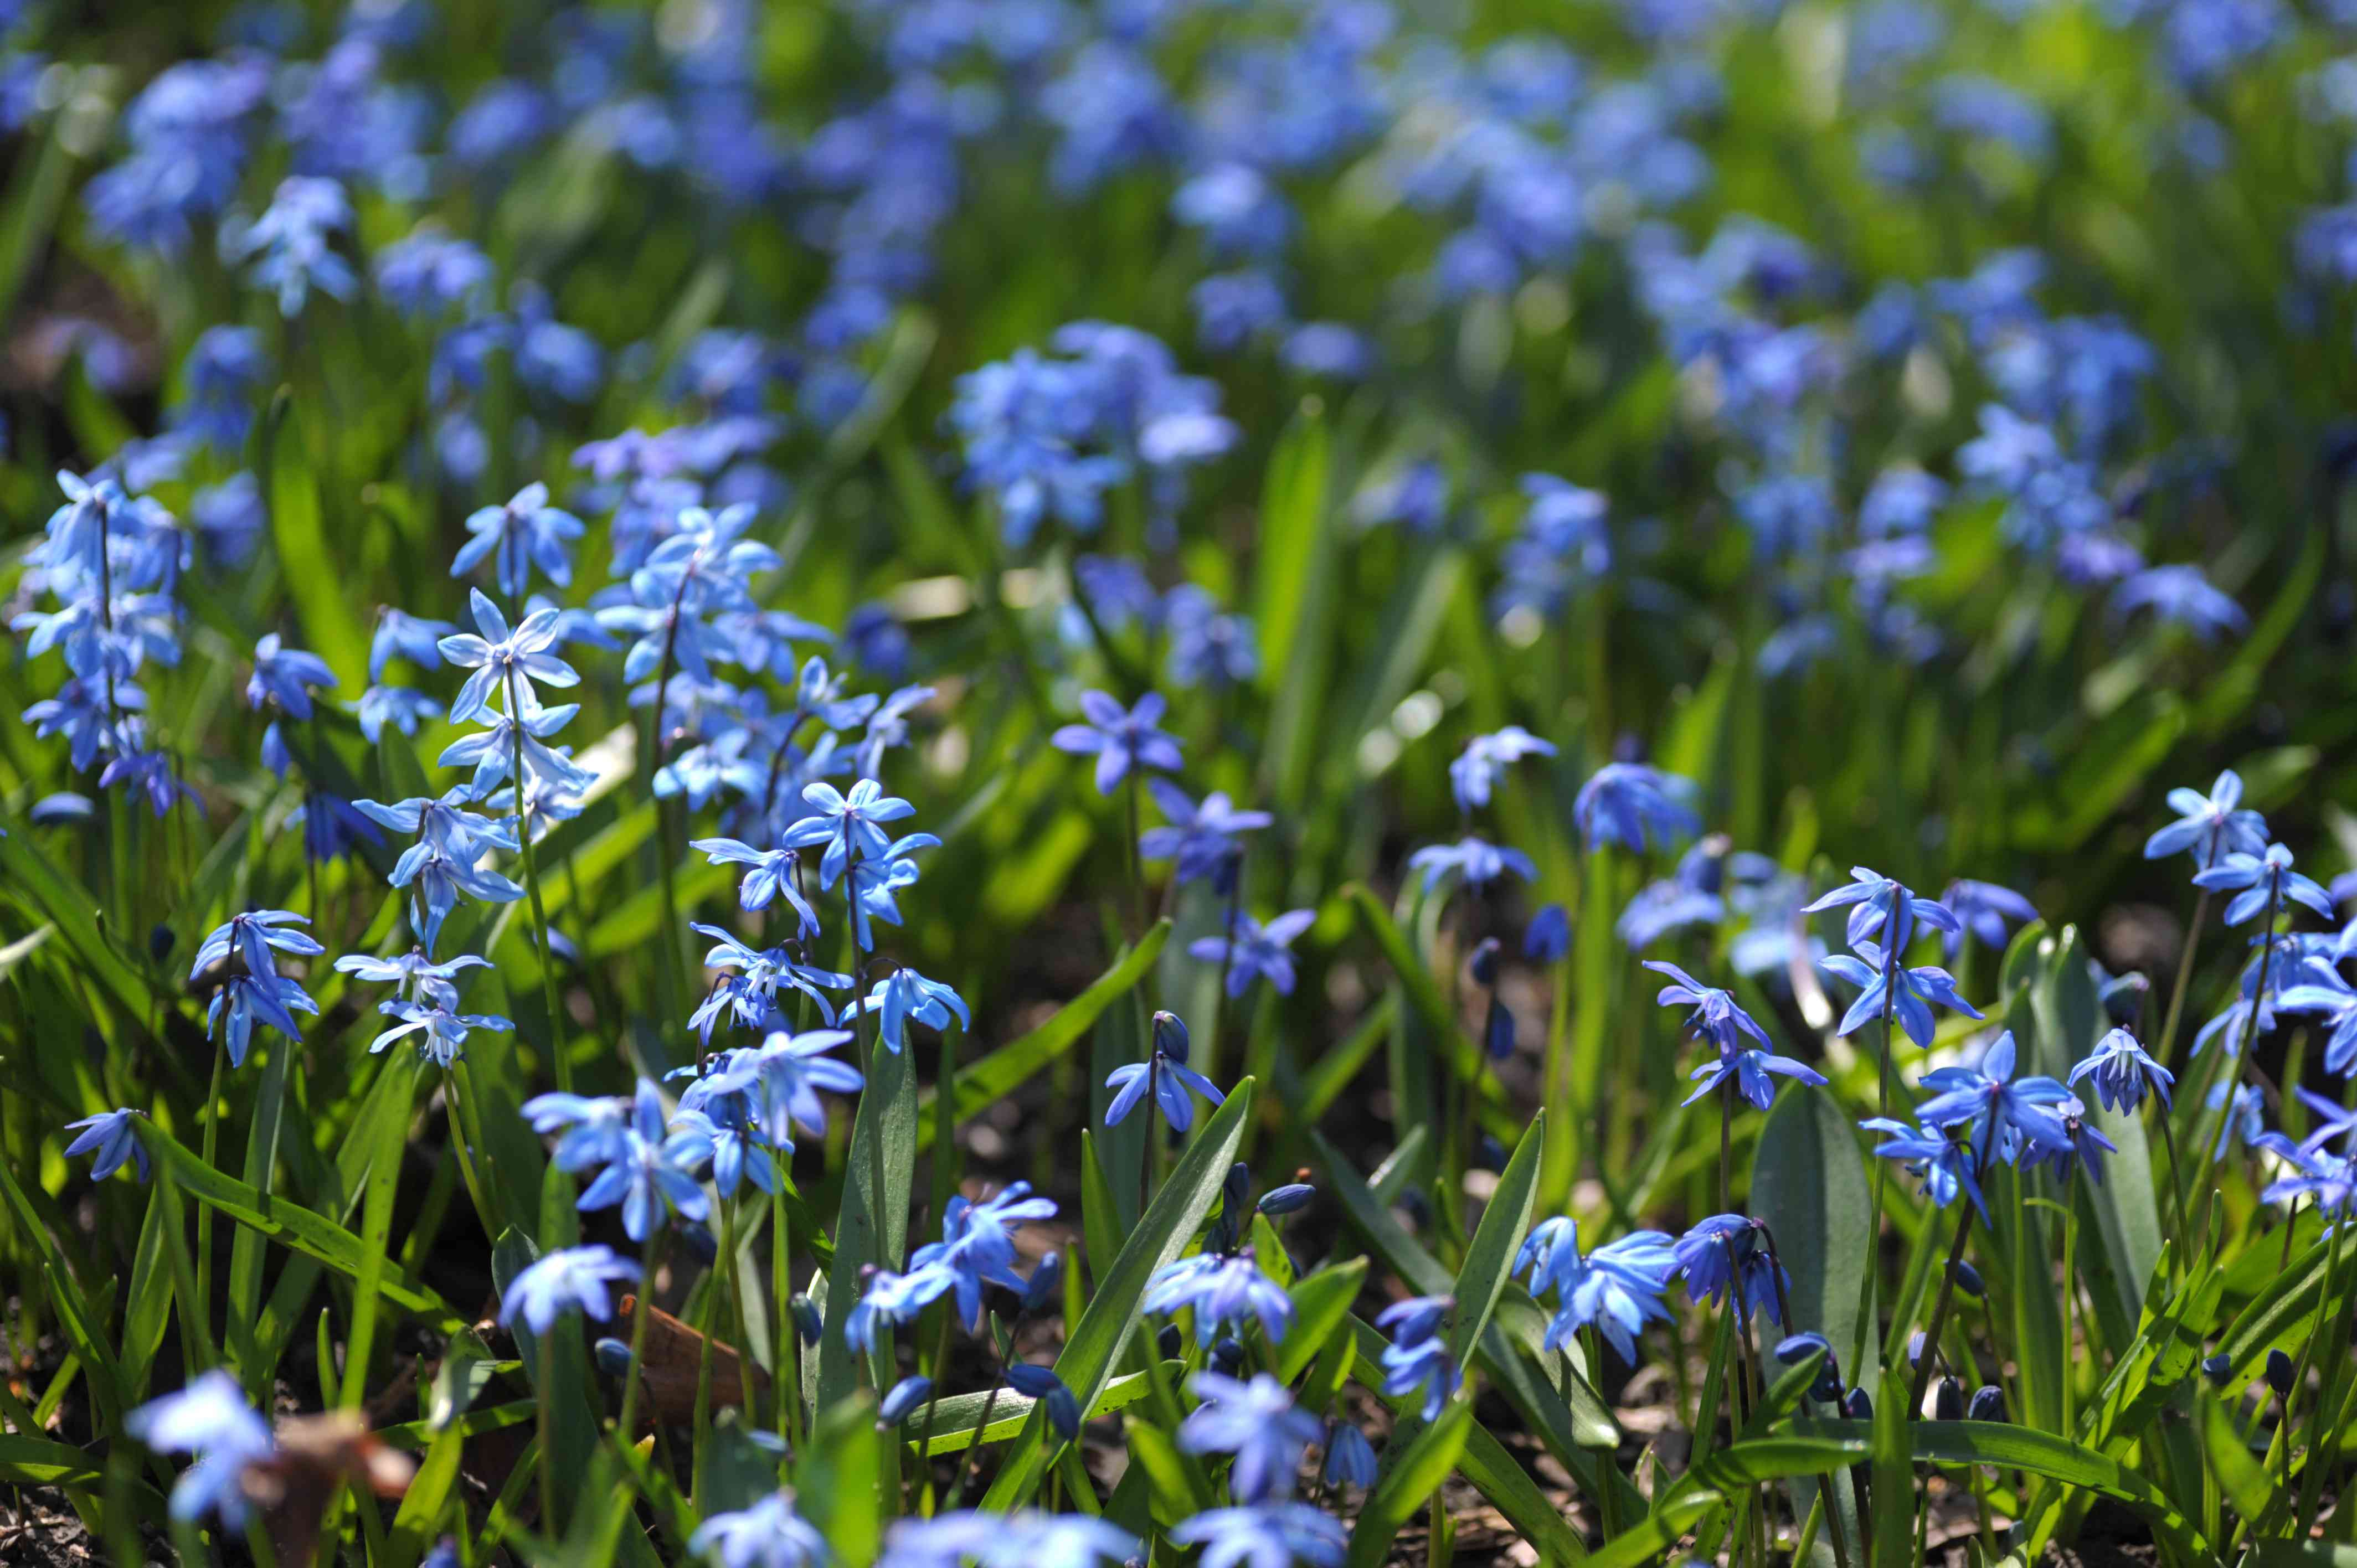 Siberian squill with blue flowers growing from ground